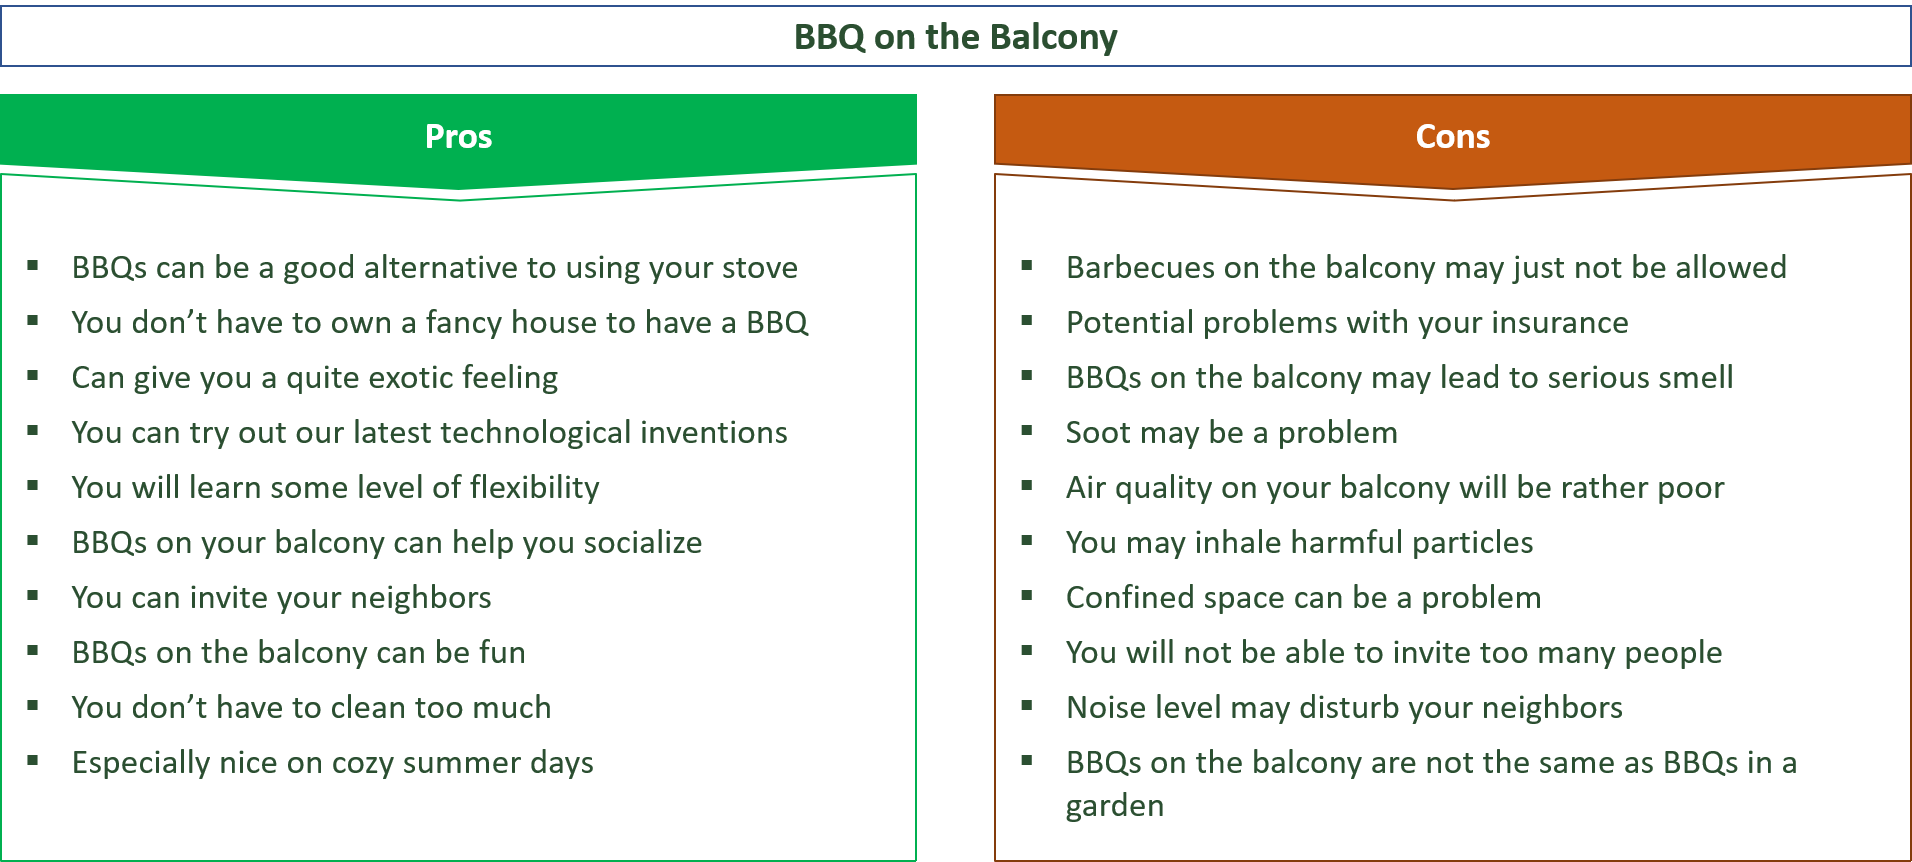 advantages and disadvantages of barbecues on the balcony